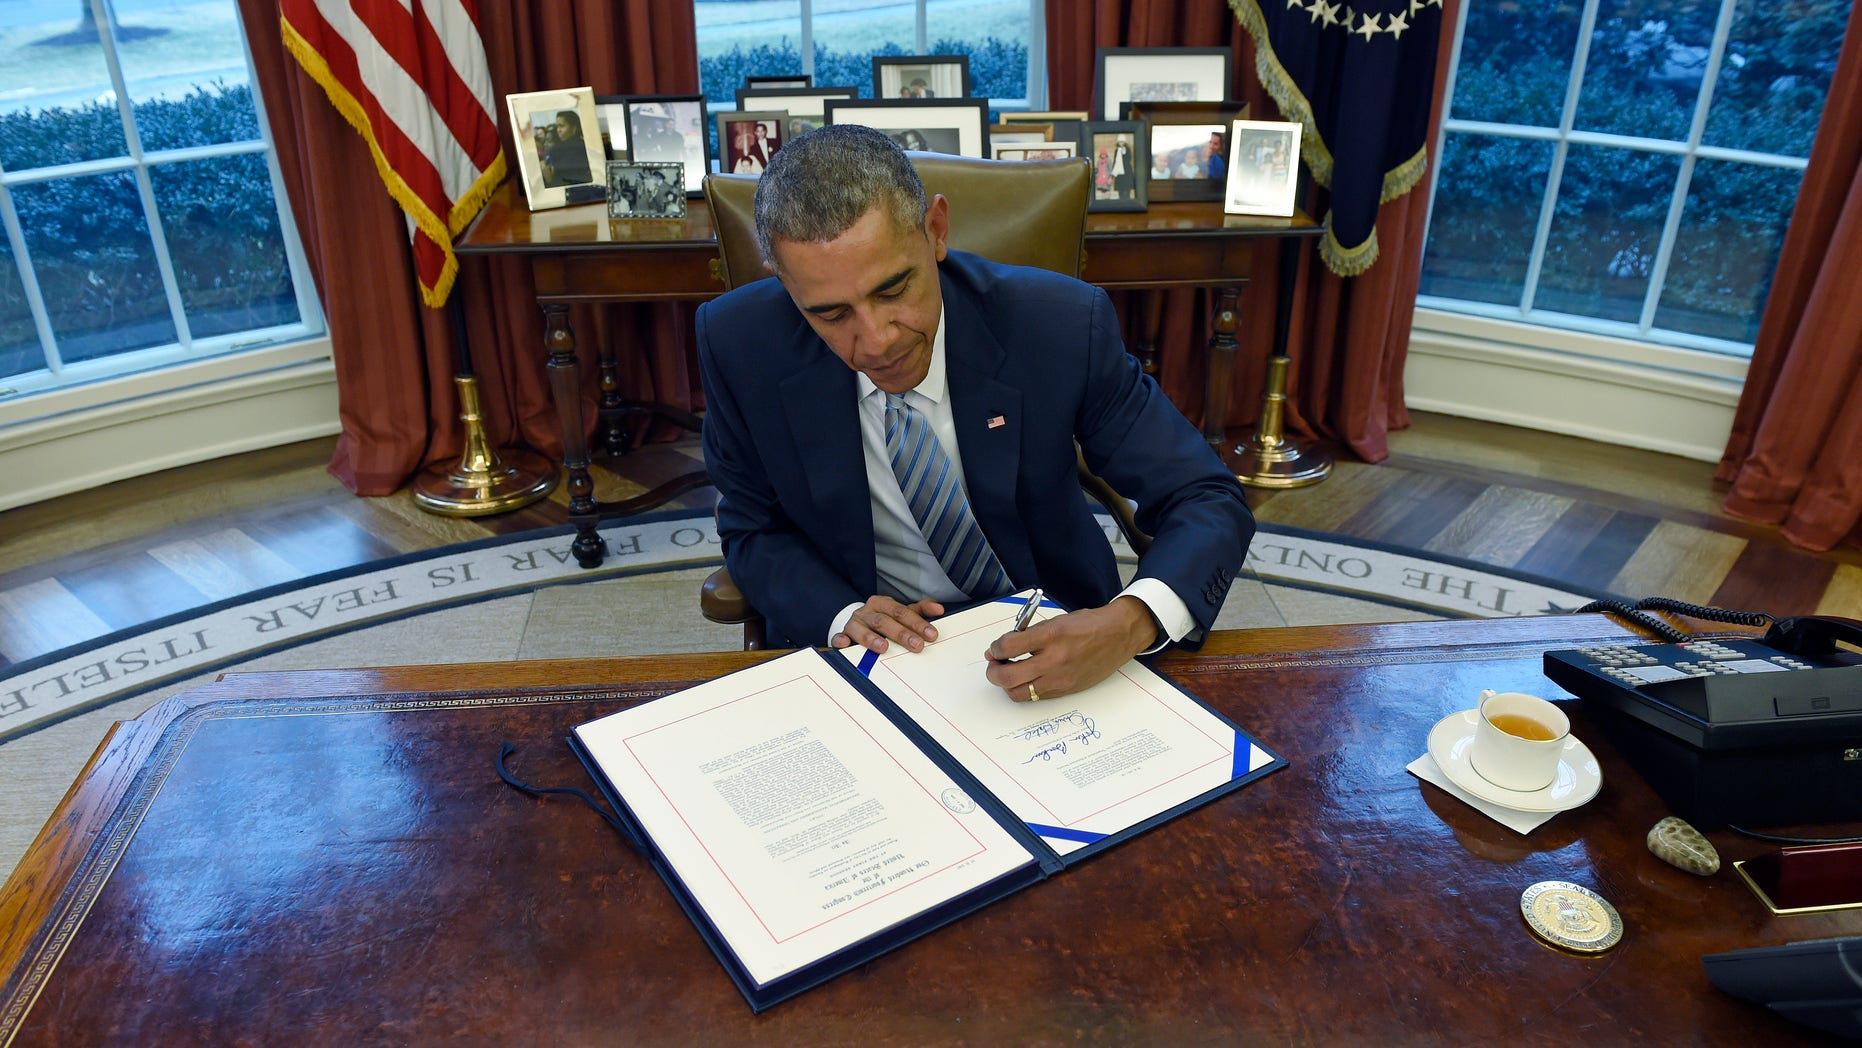 President Obama signs the Department of Homeland Security Appropriations Act on March 4, 2015.